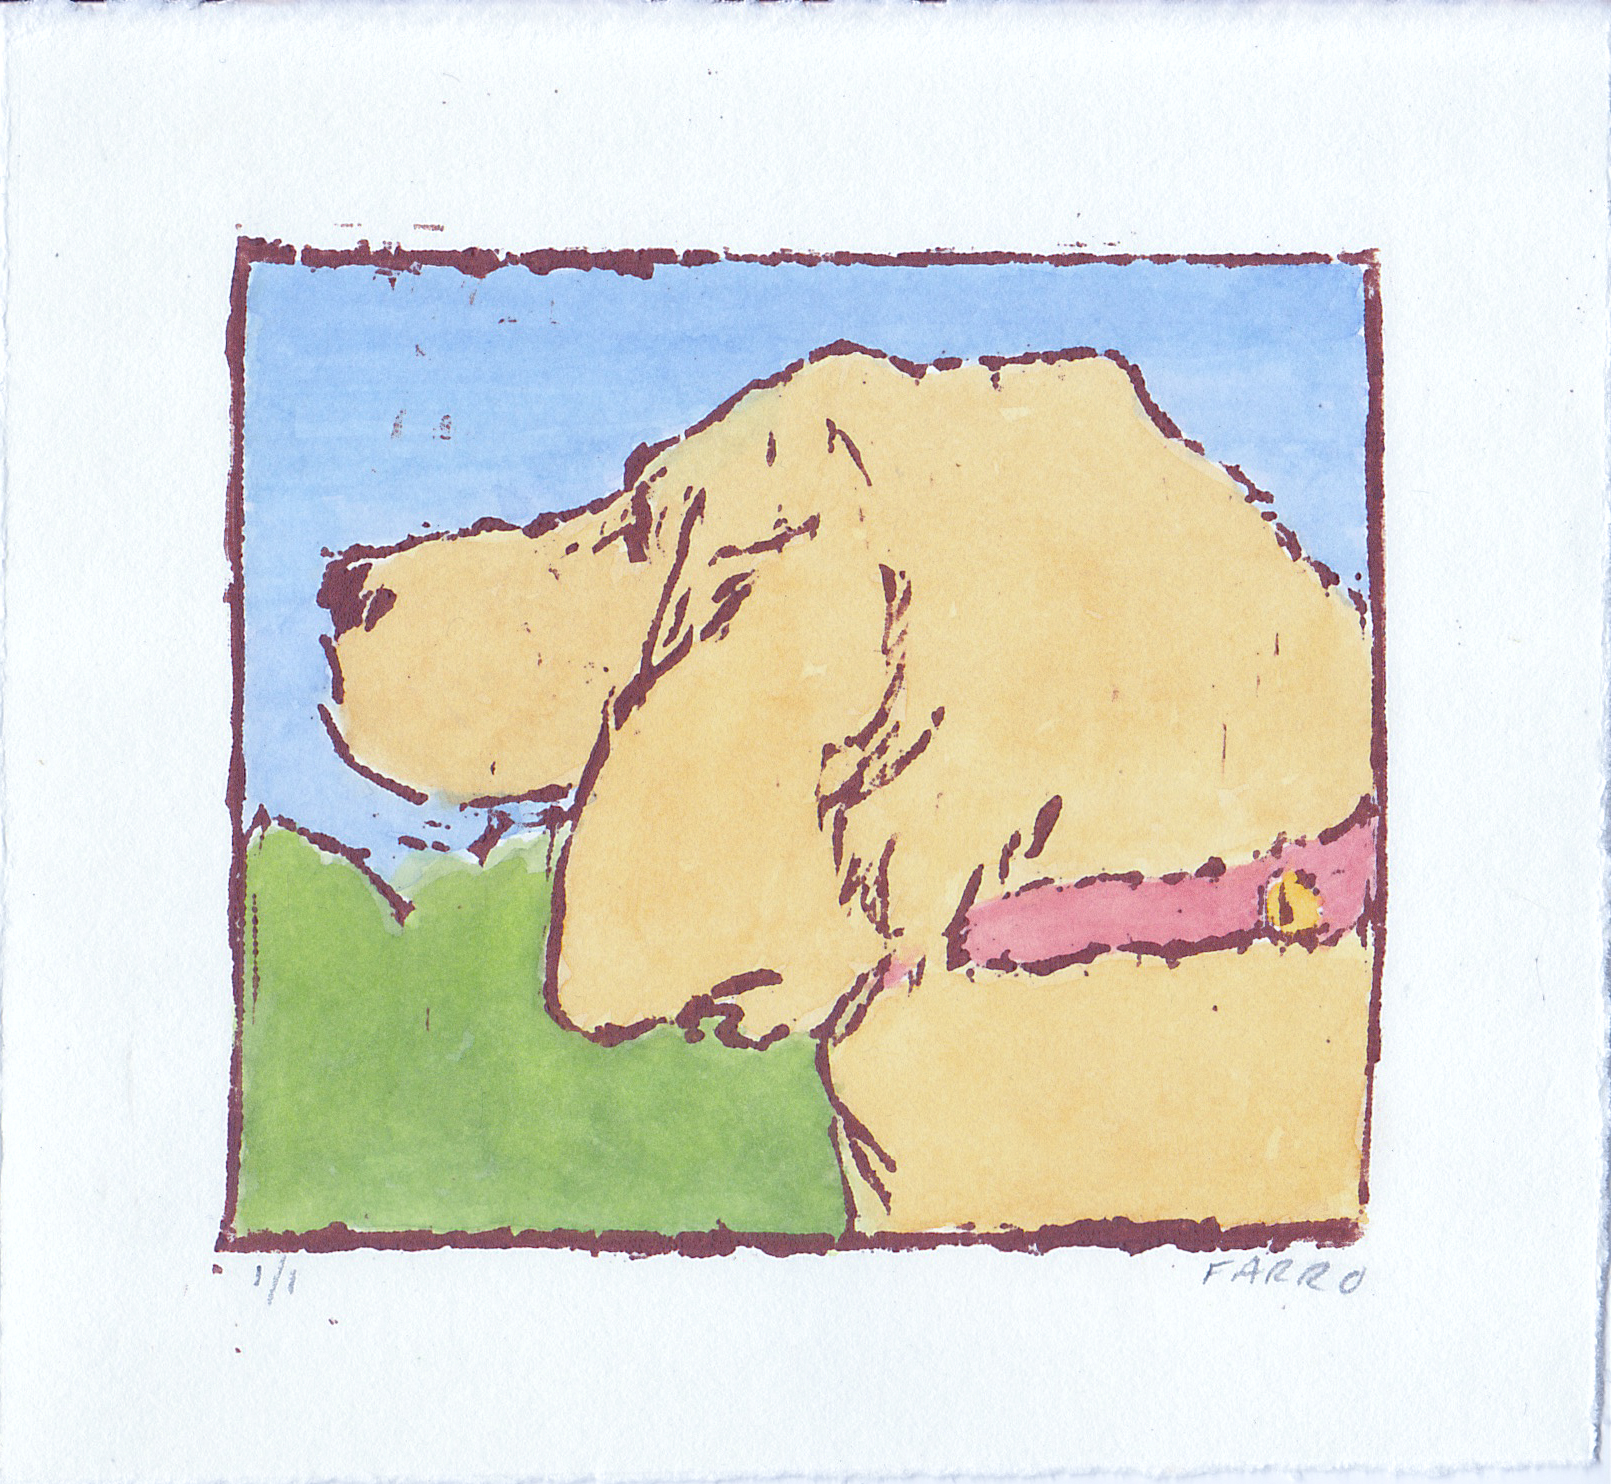 """Hound Dog  woodblock print with hand-coloring edition of 1 3.75"""" x 3.25"""" 2019   purchase"""